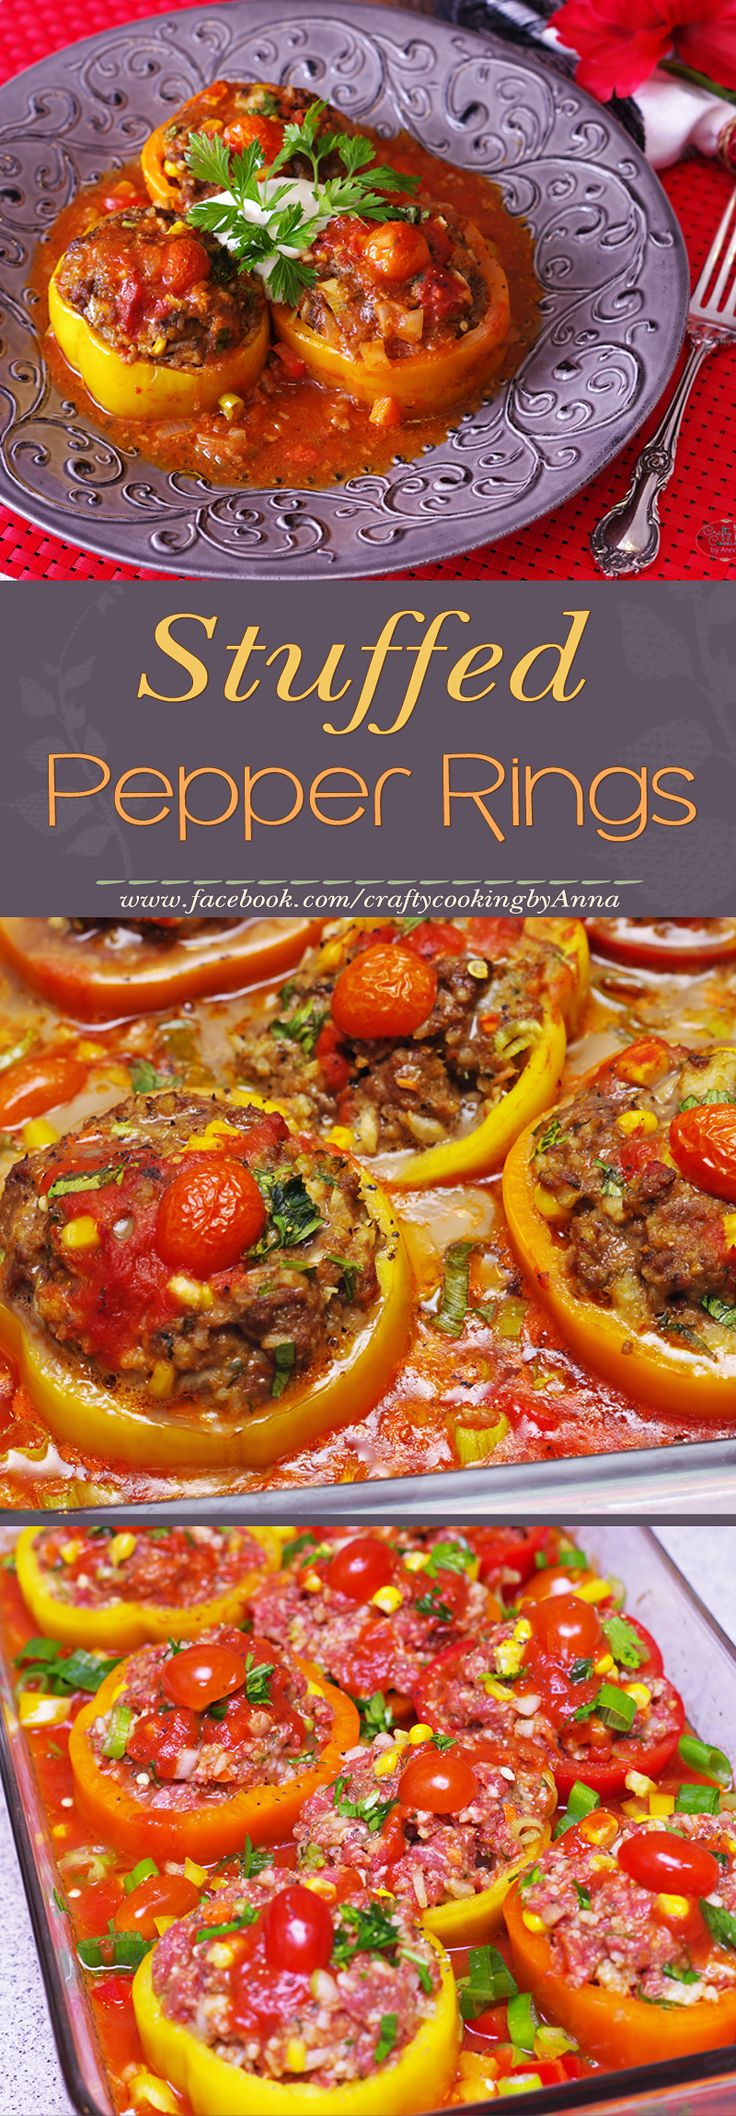 Stuffed Pepper Rings! #Easy #Delicious #Dinner